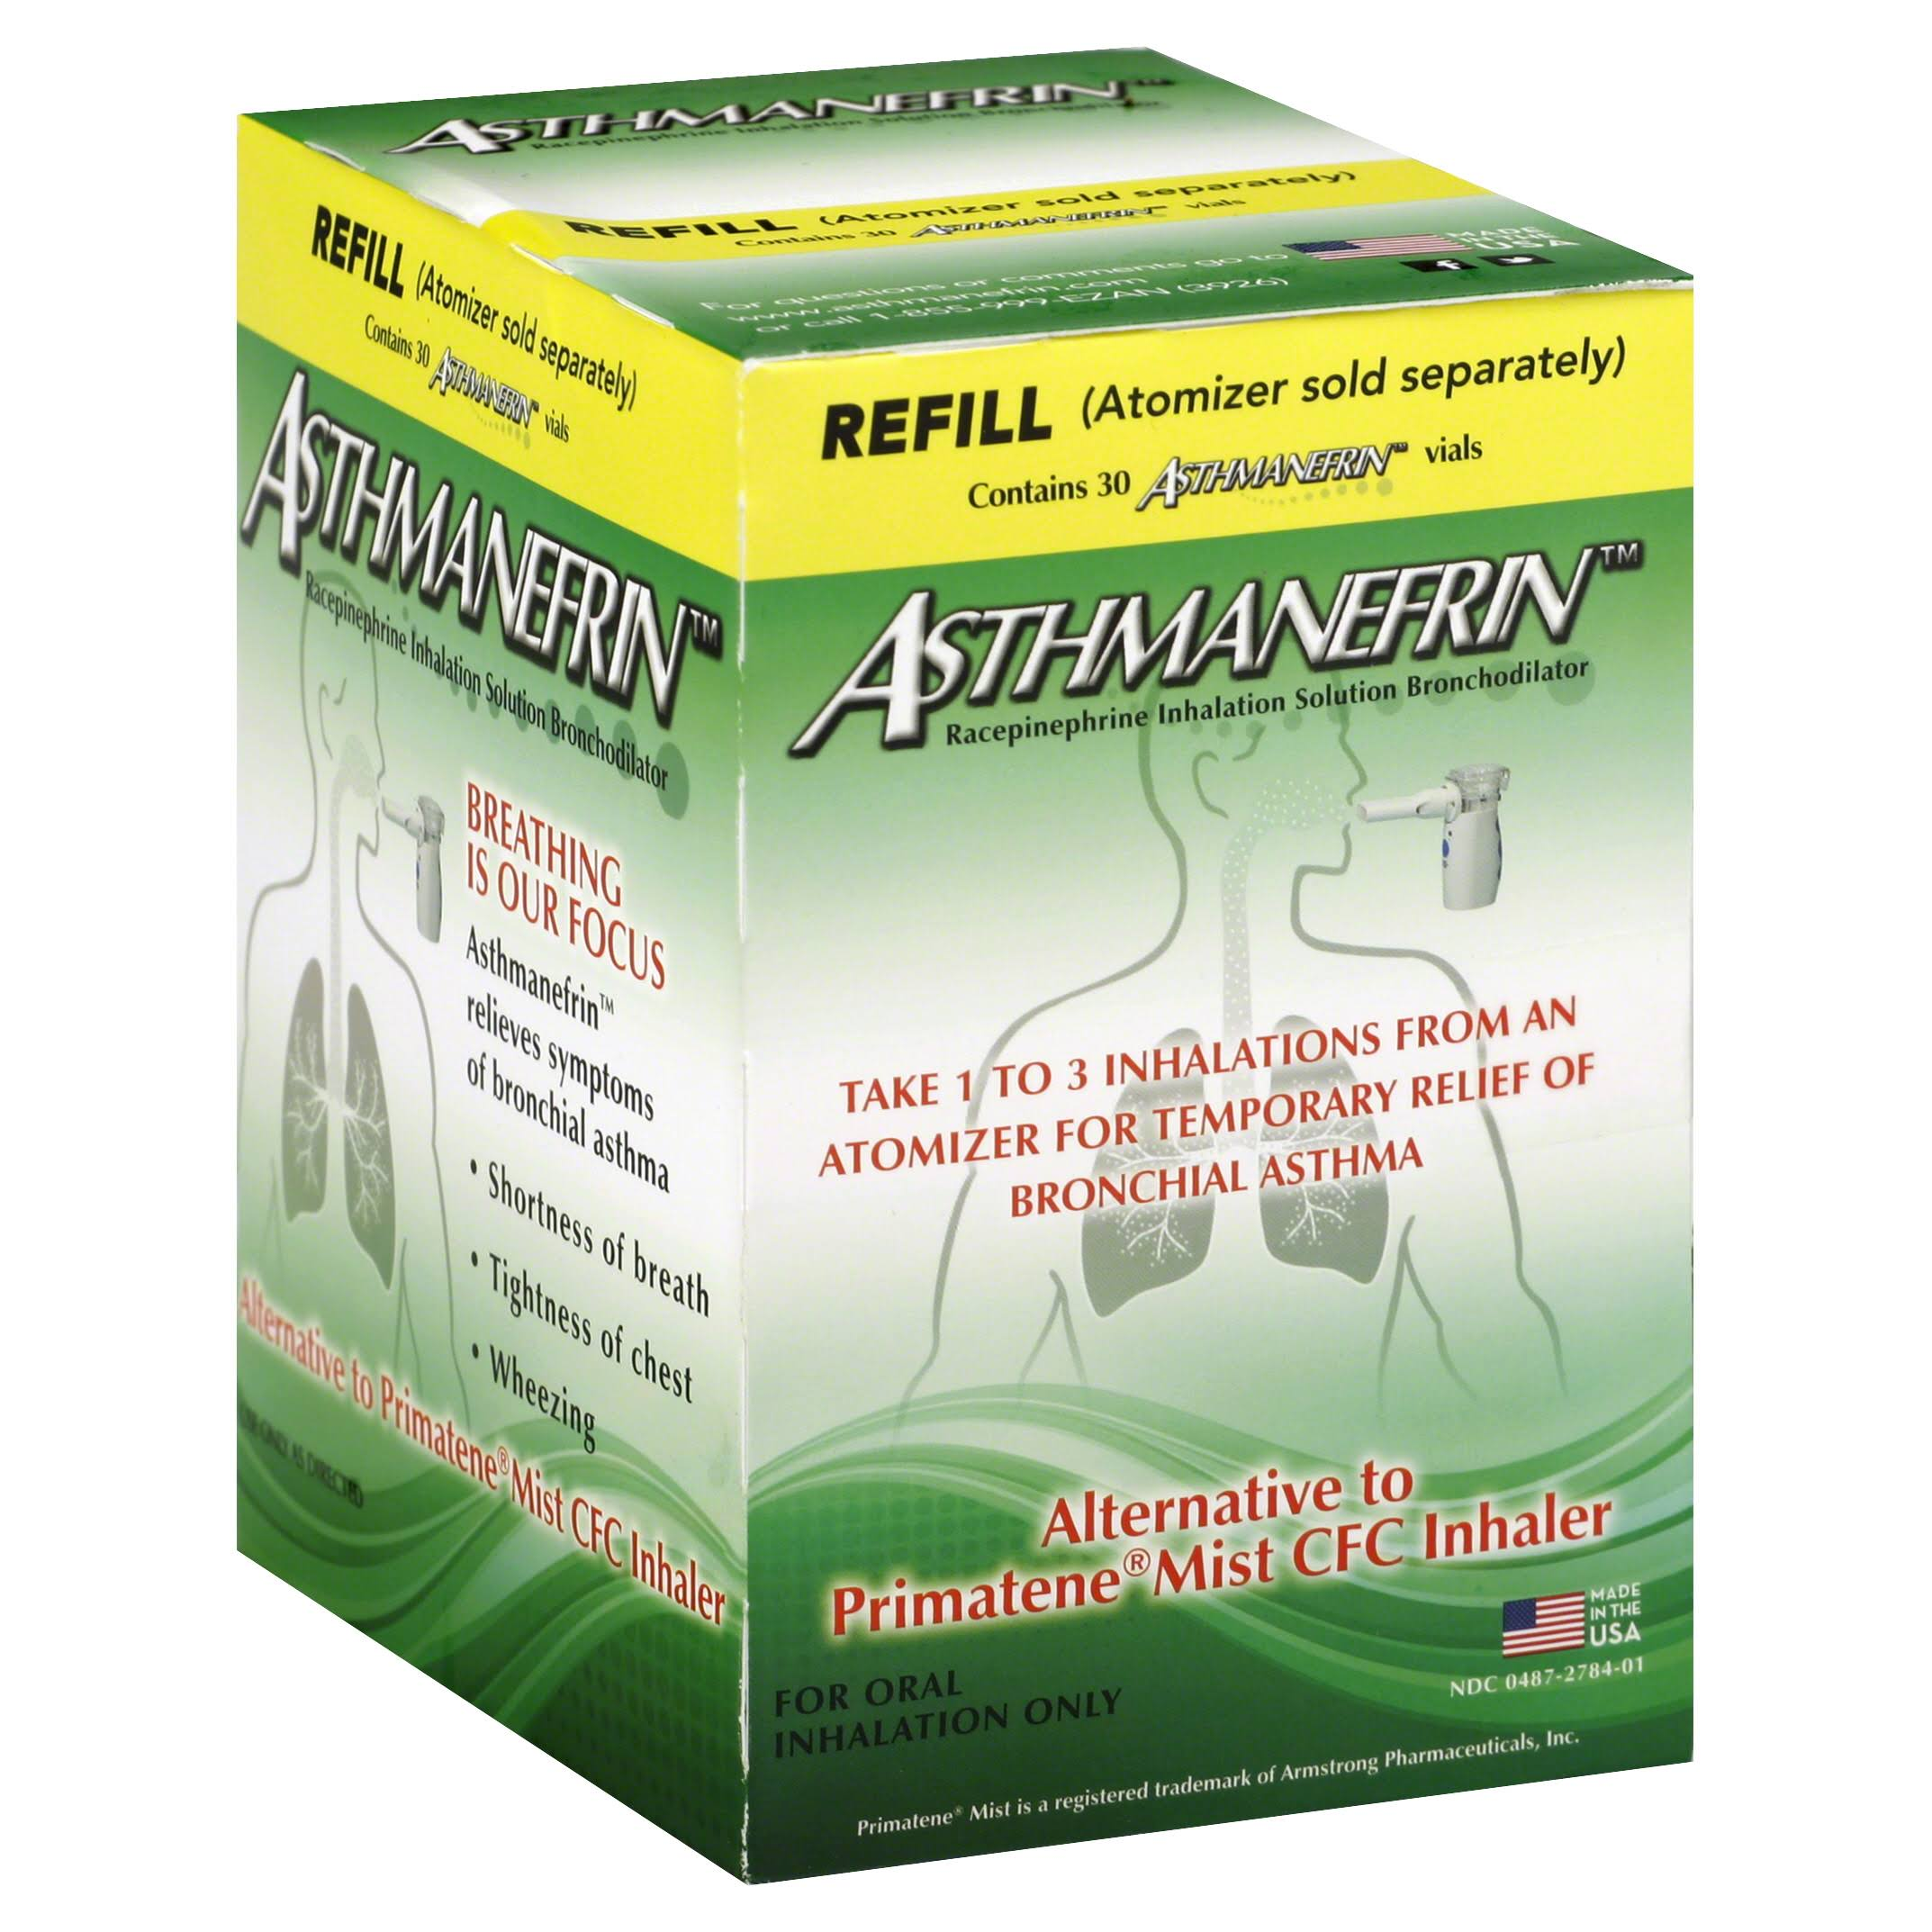 Asthmanefrin Asthma Medication Refill Vials - x30